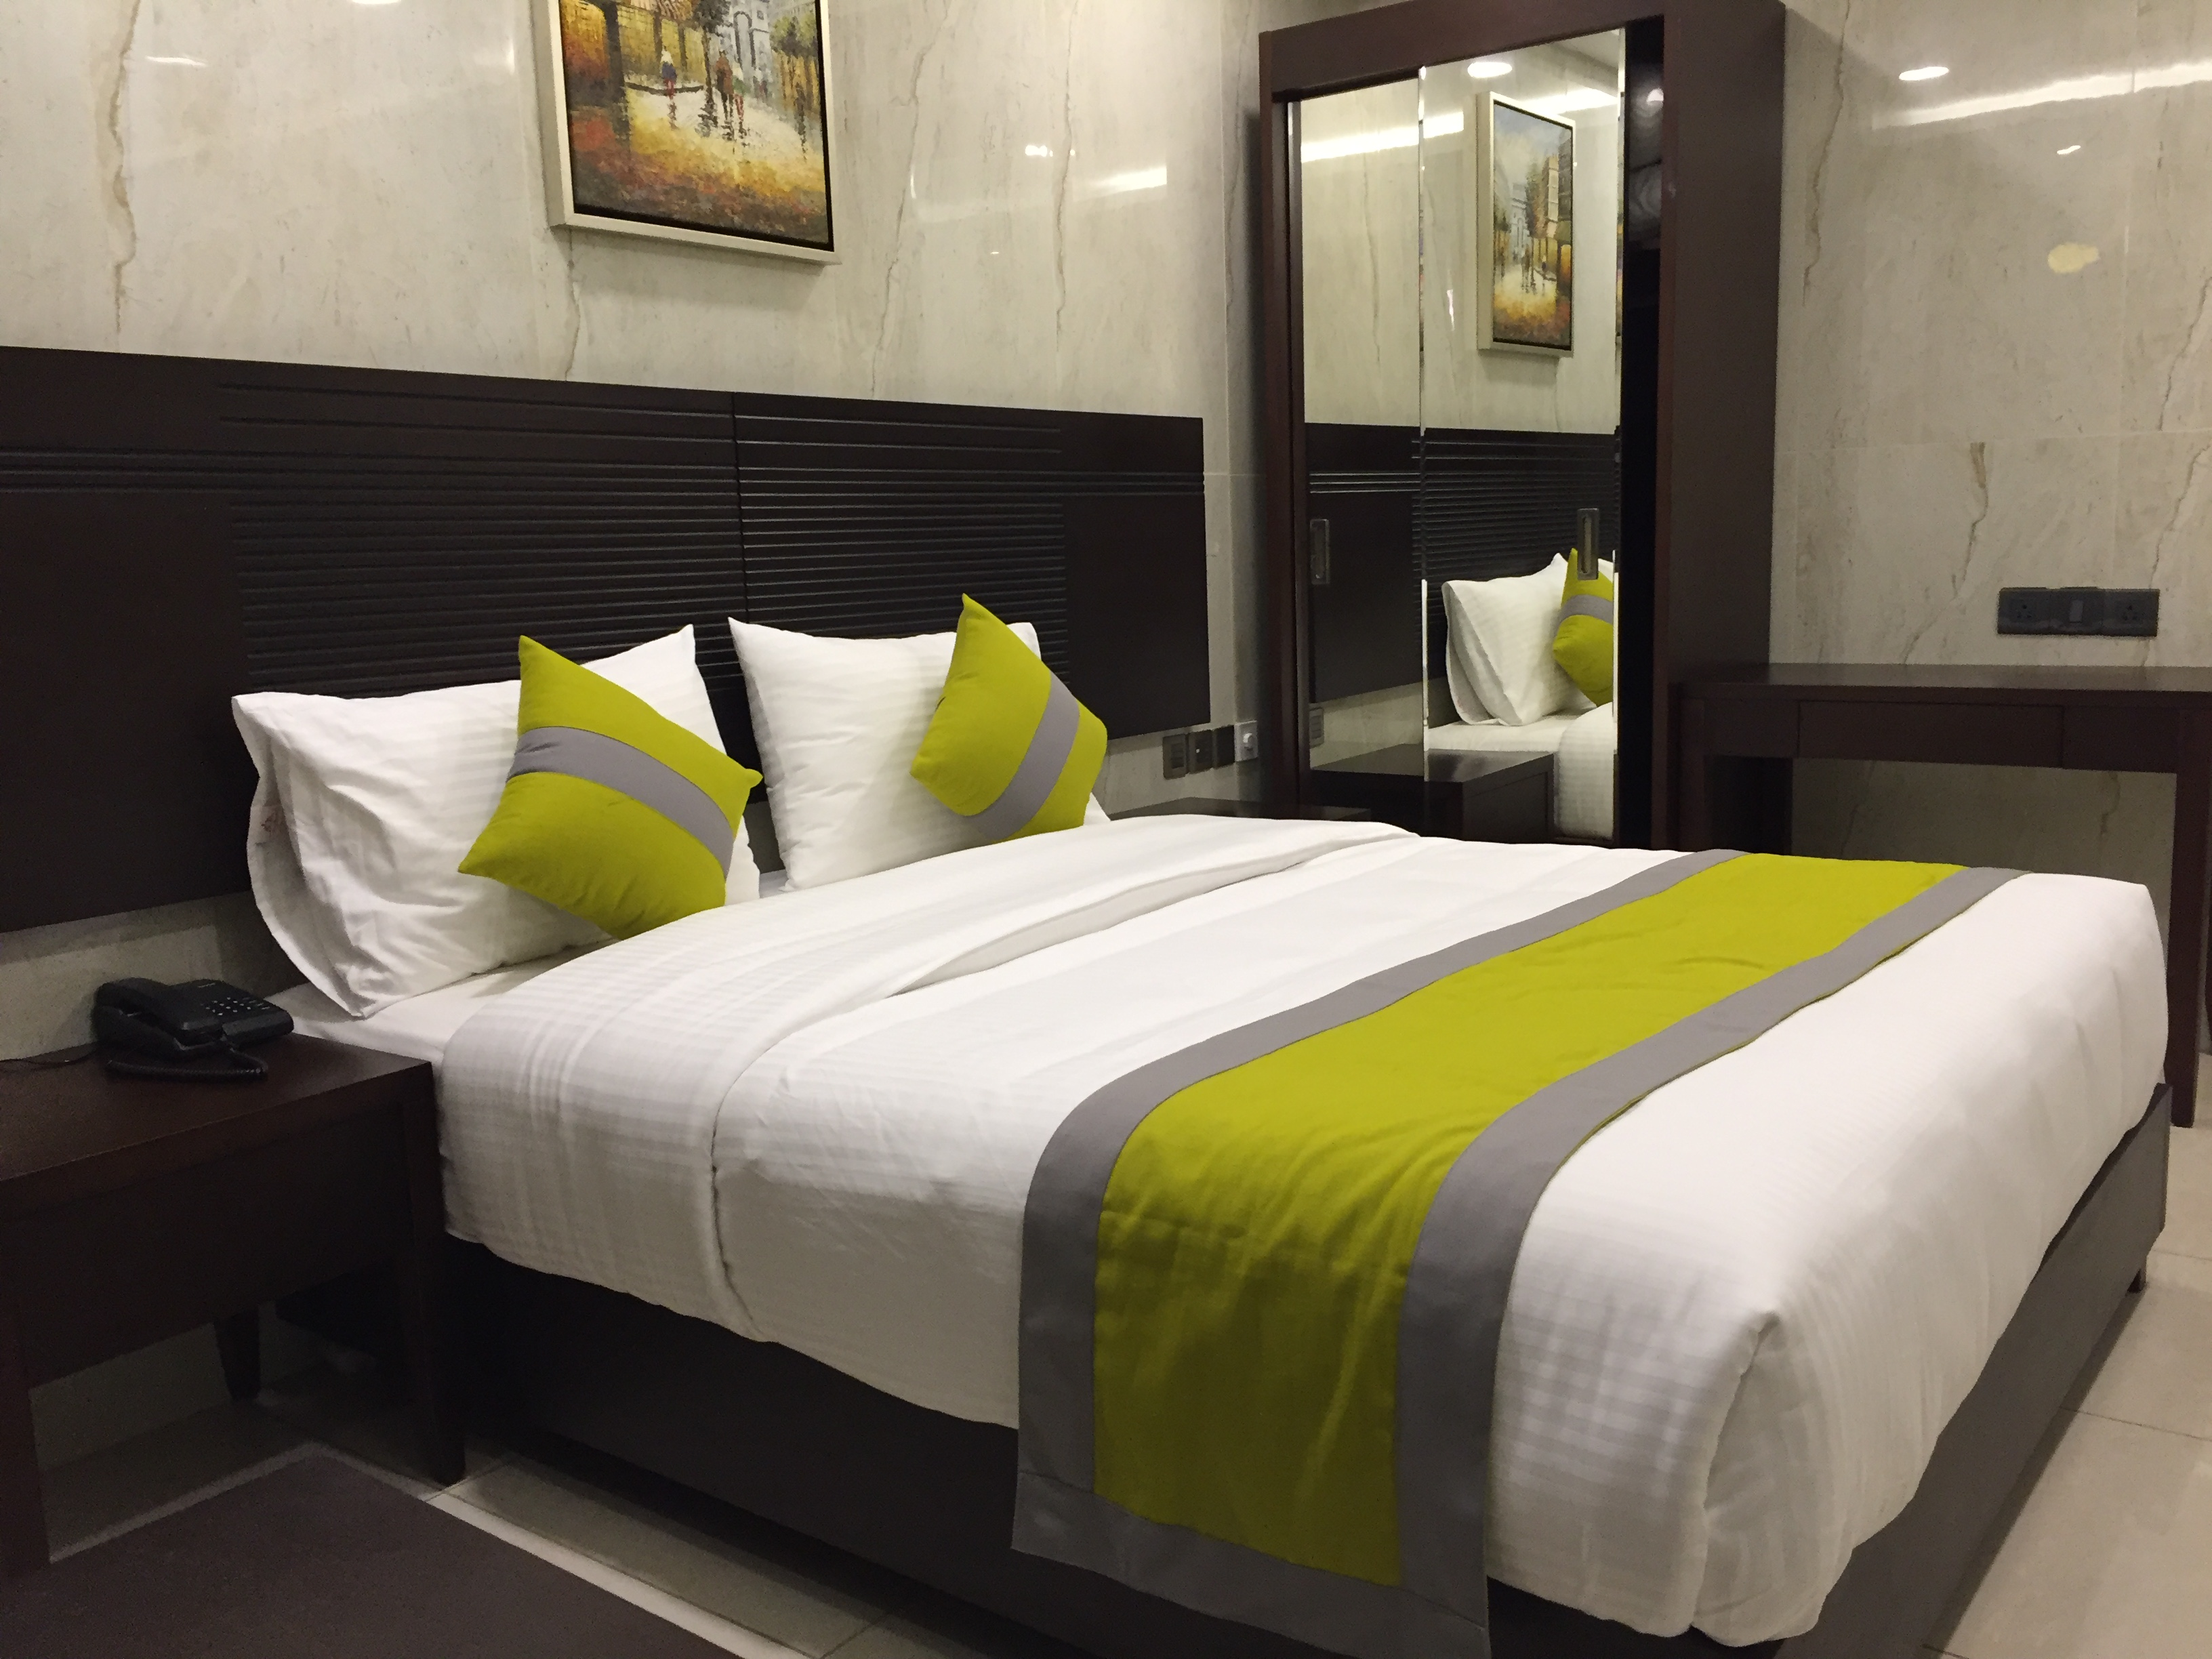 Deluxe Room With Single Occupancy